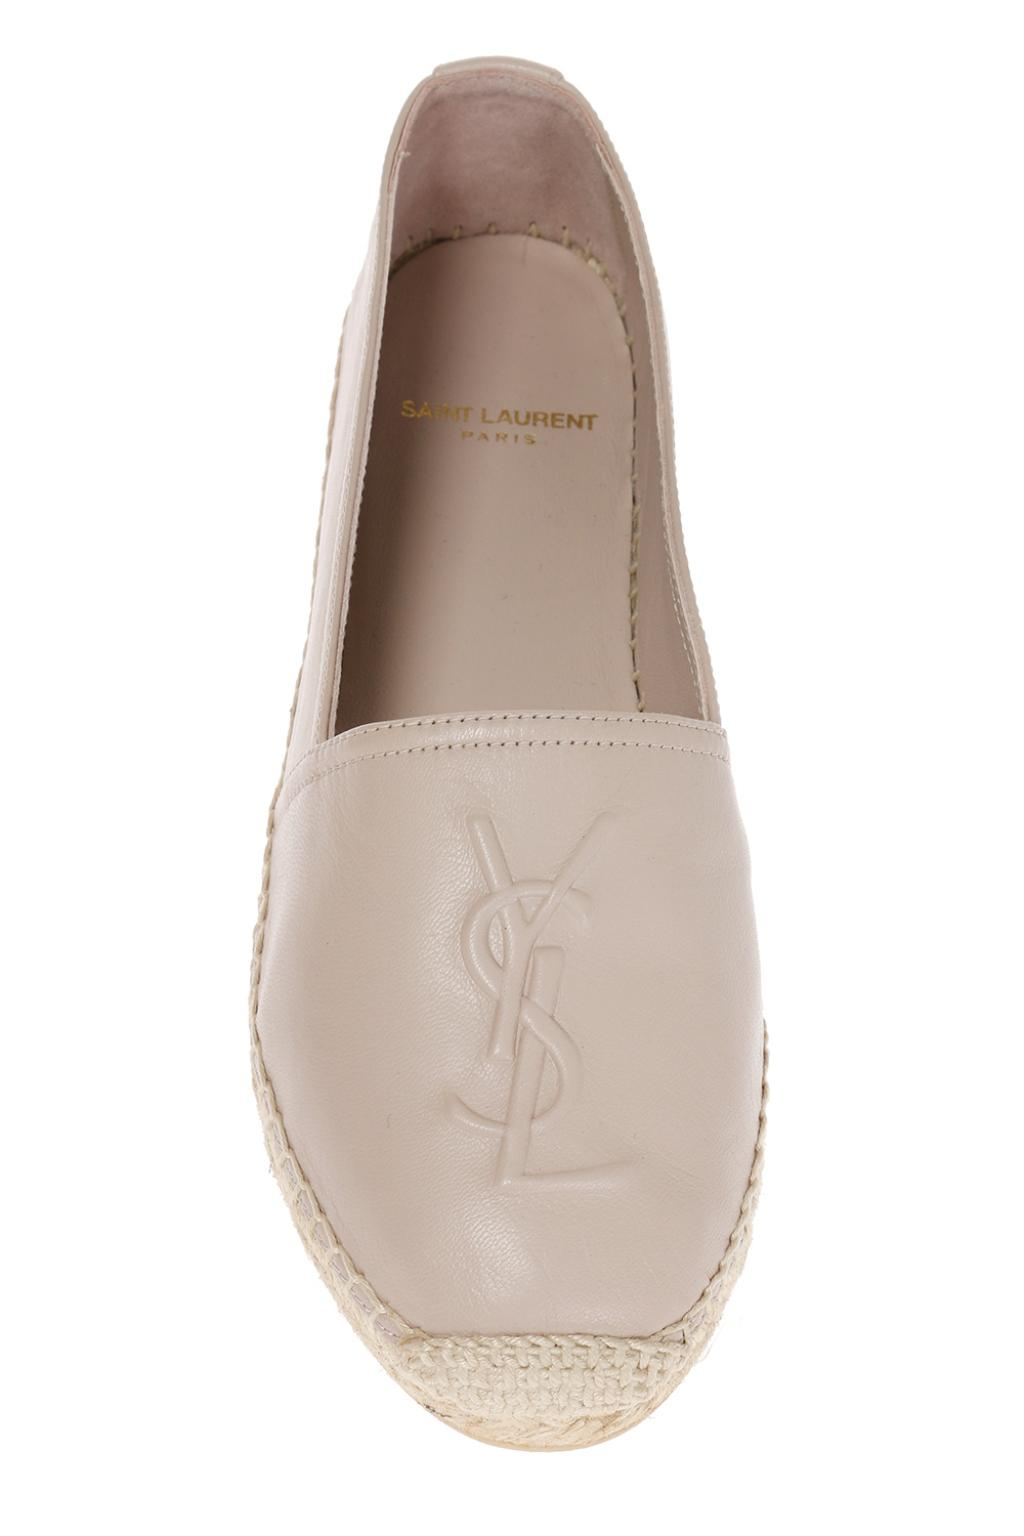 Saint Laurent 'Monogram' espadrilles